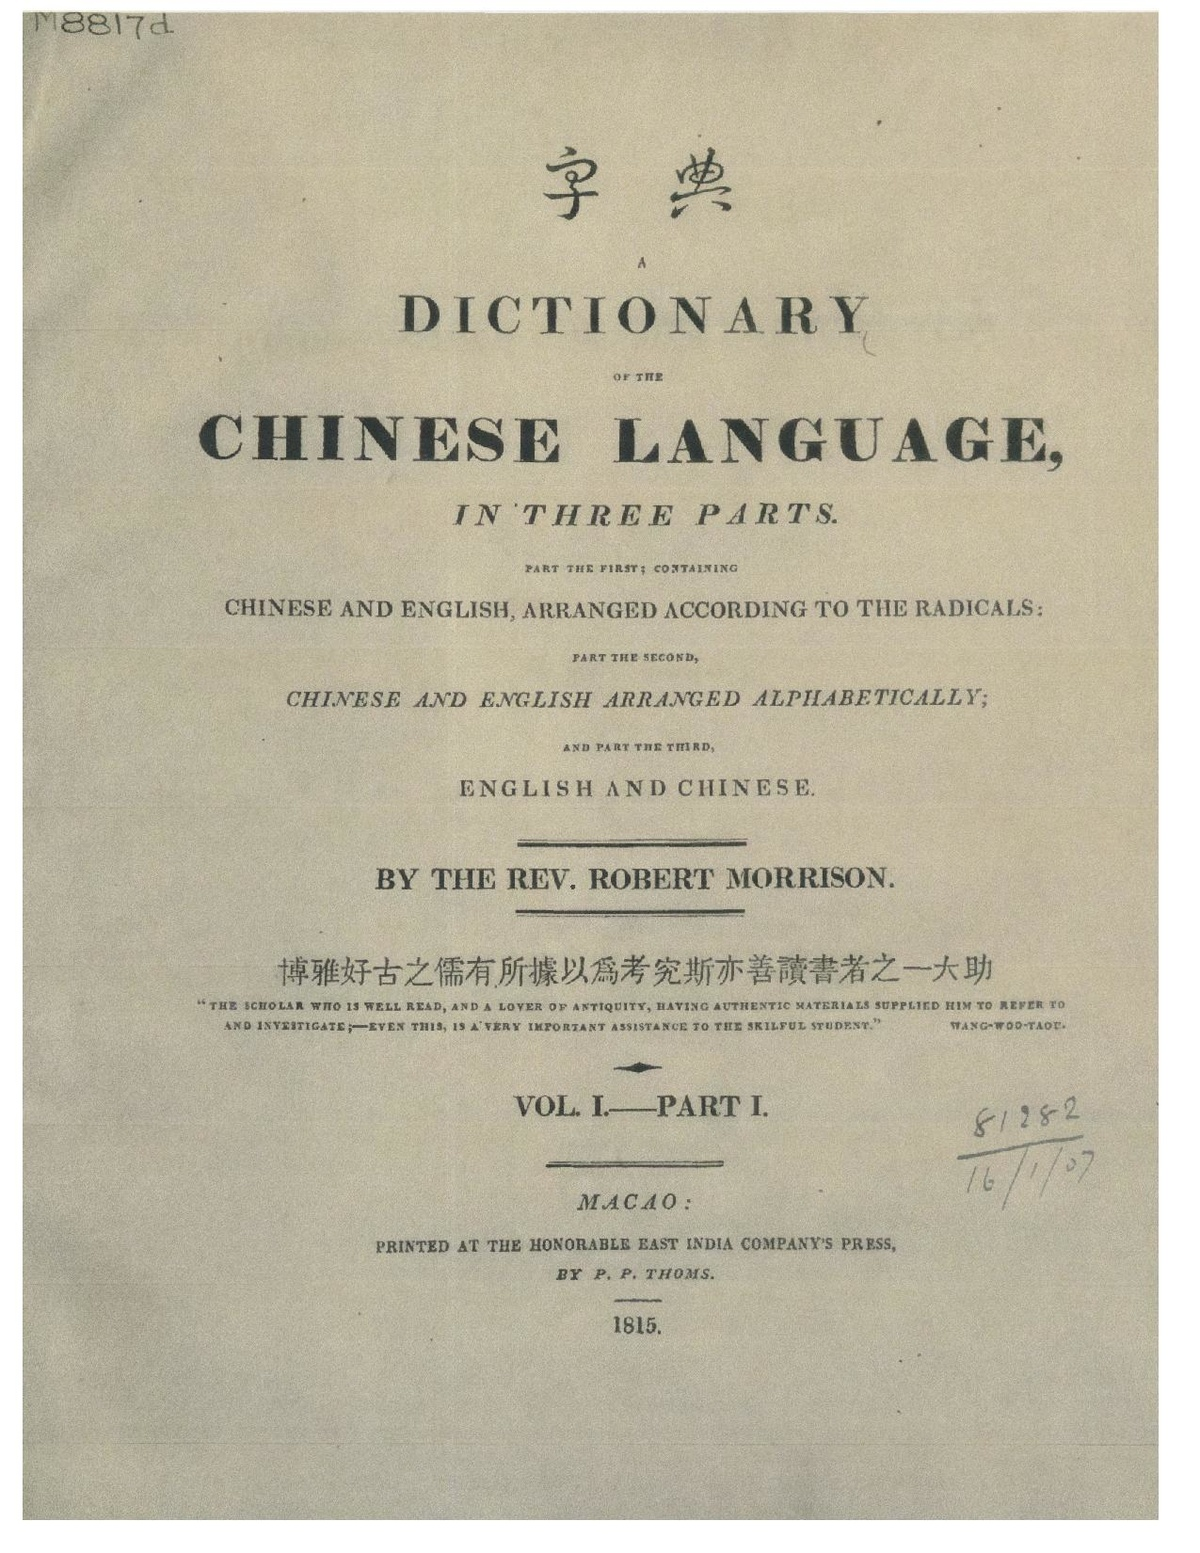 A Dictionary of the Chinese Language - Wikipedia